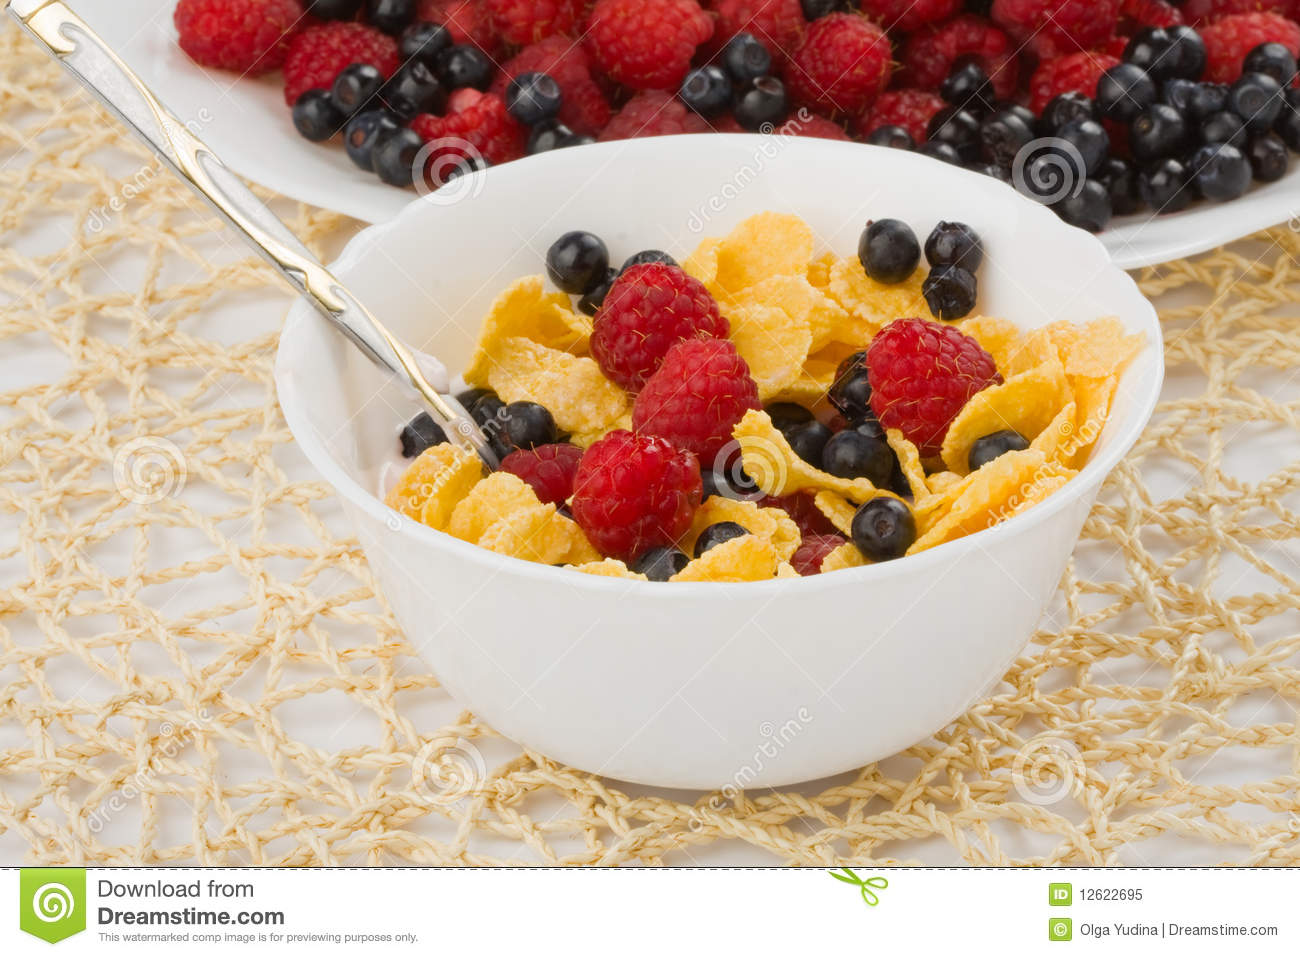 Can diabetic patients take cornflakes as in their regular diet chart?